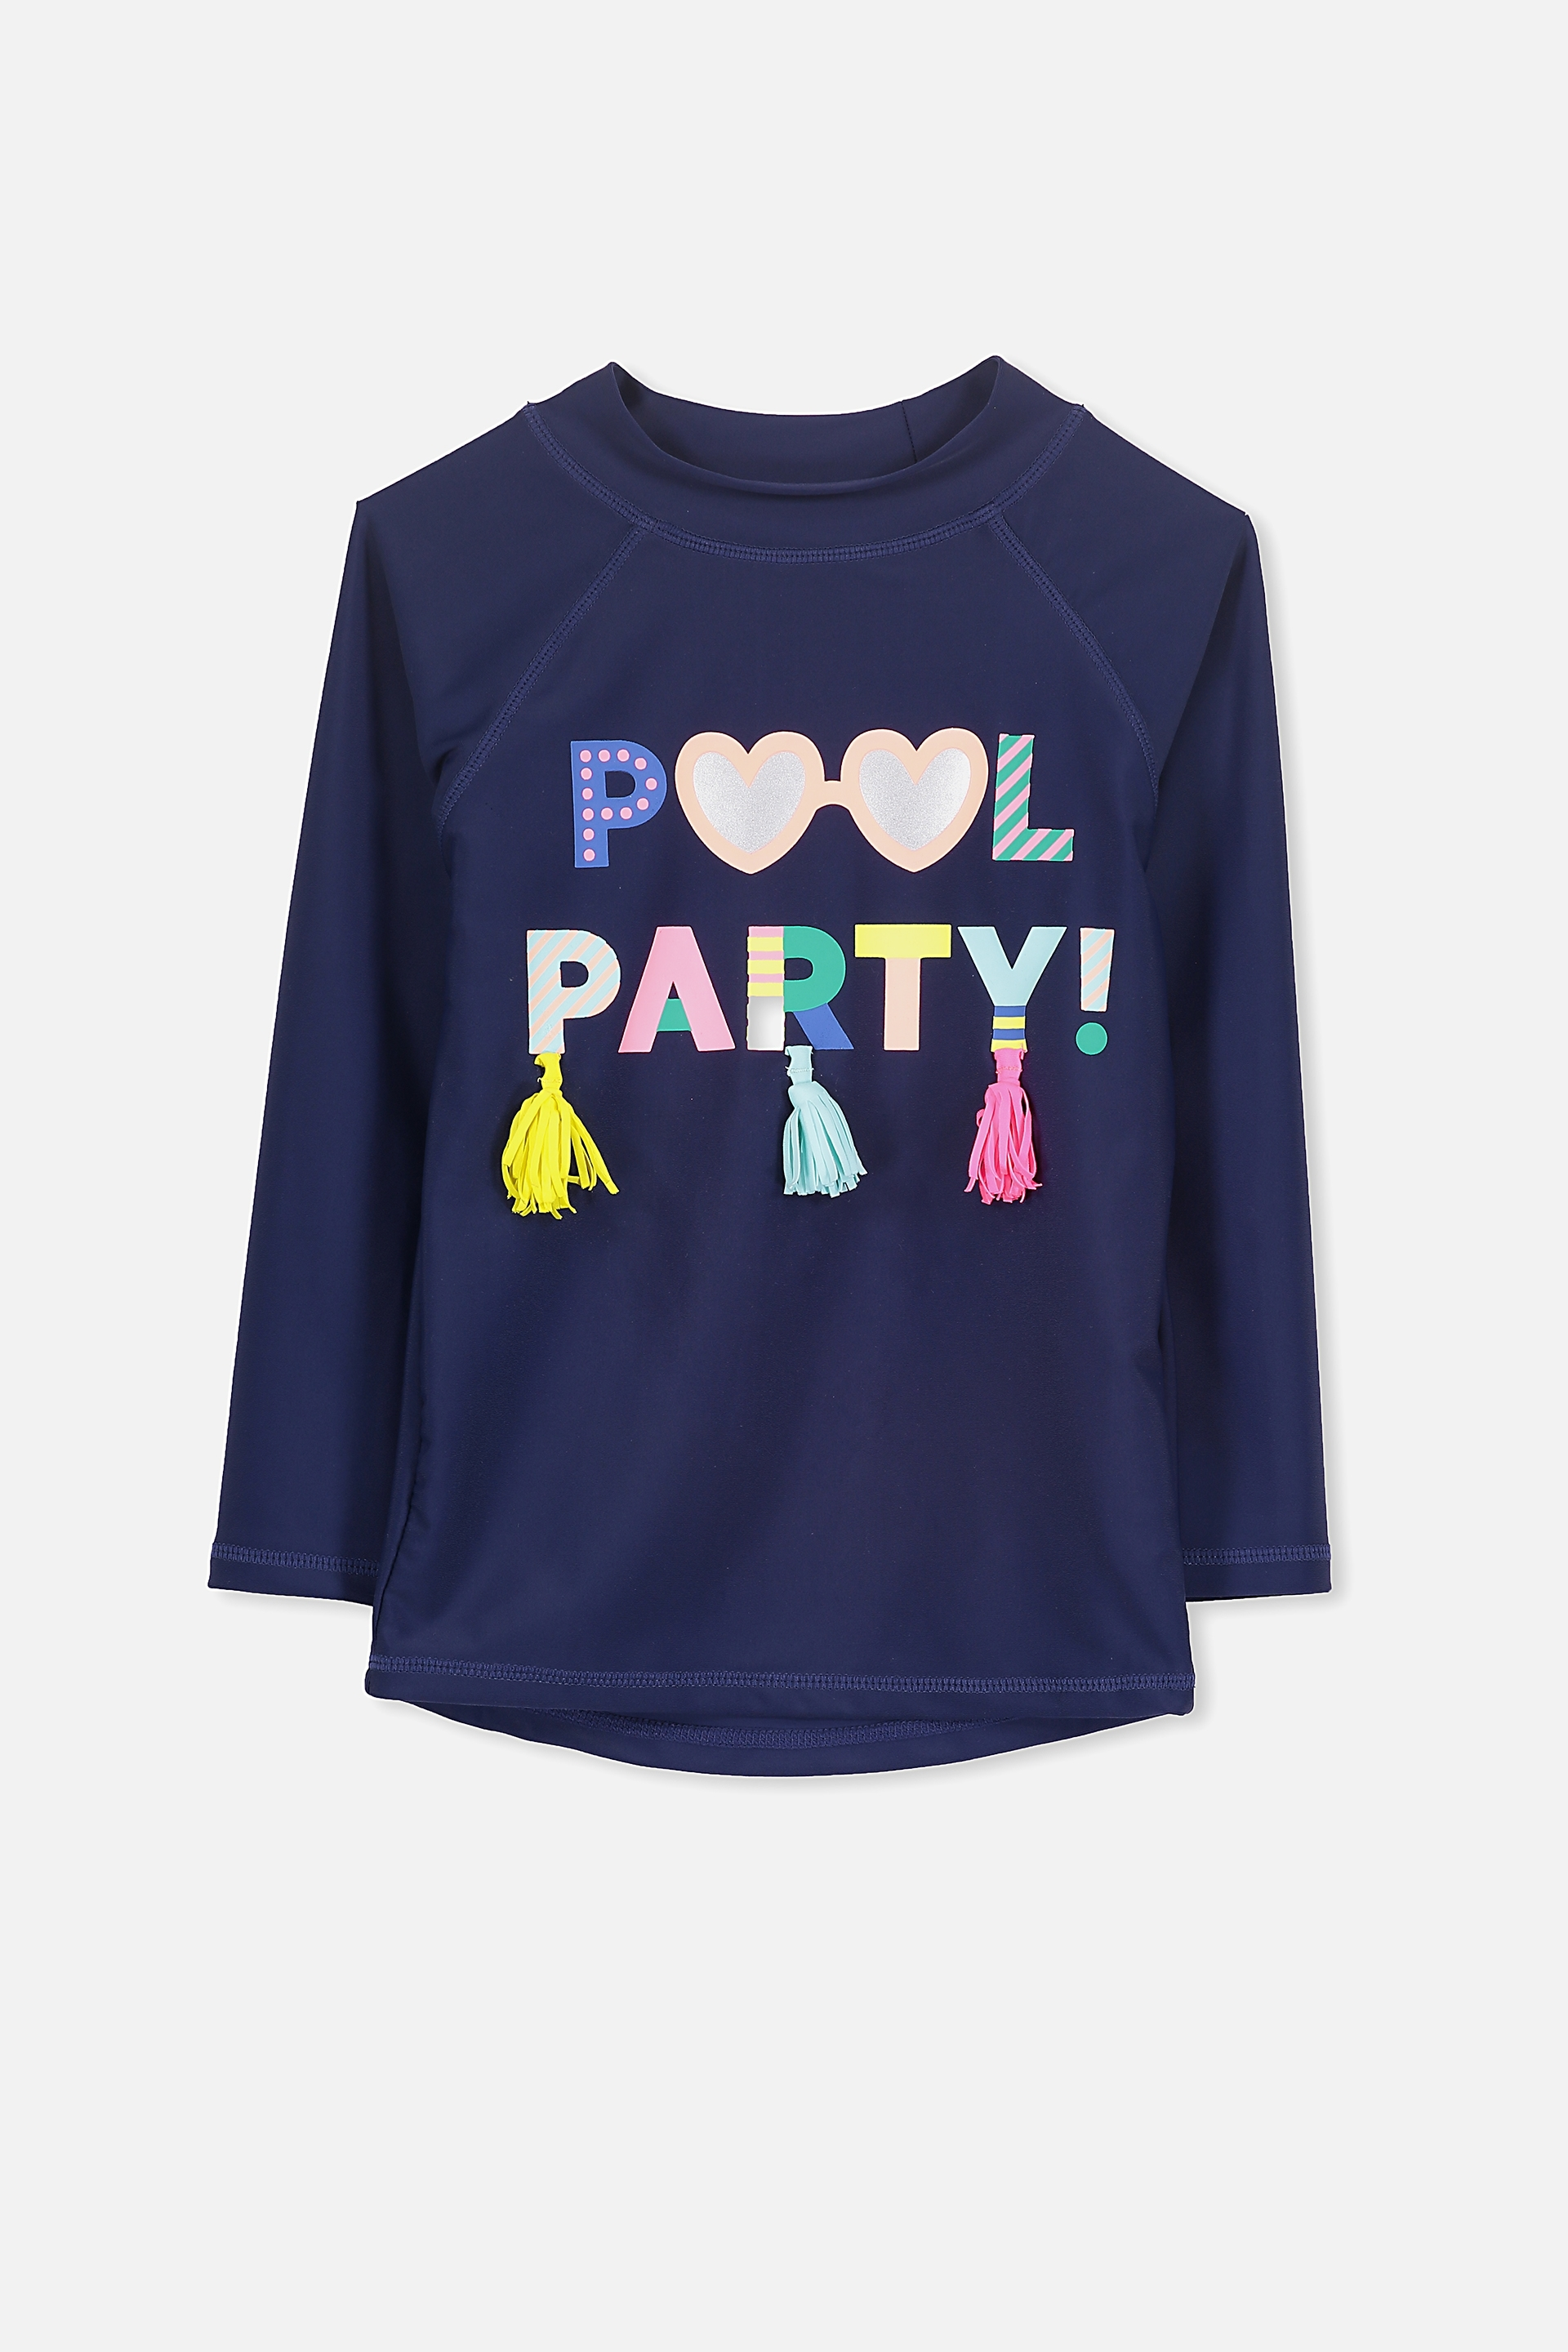 Cotton On Kids - Pool Party Tassel Hamilton Long Sleeve Rash Vest - Peacoat/pool party 9352403941932